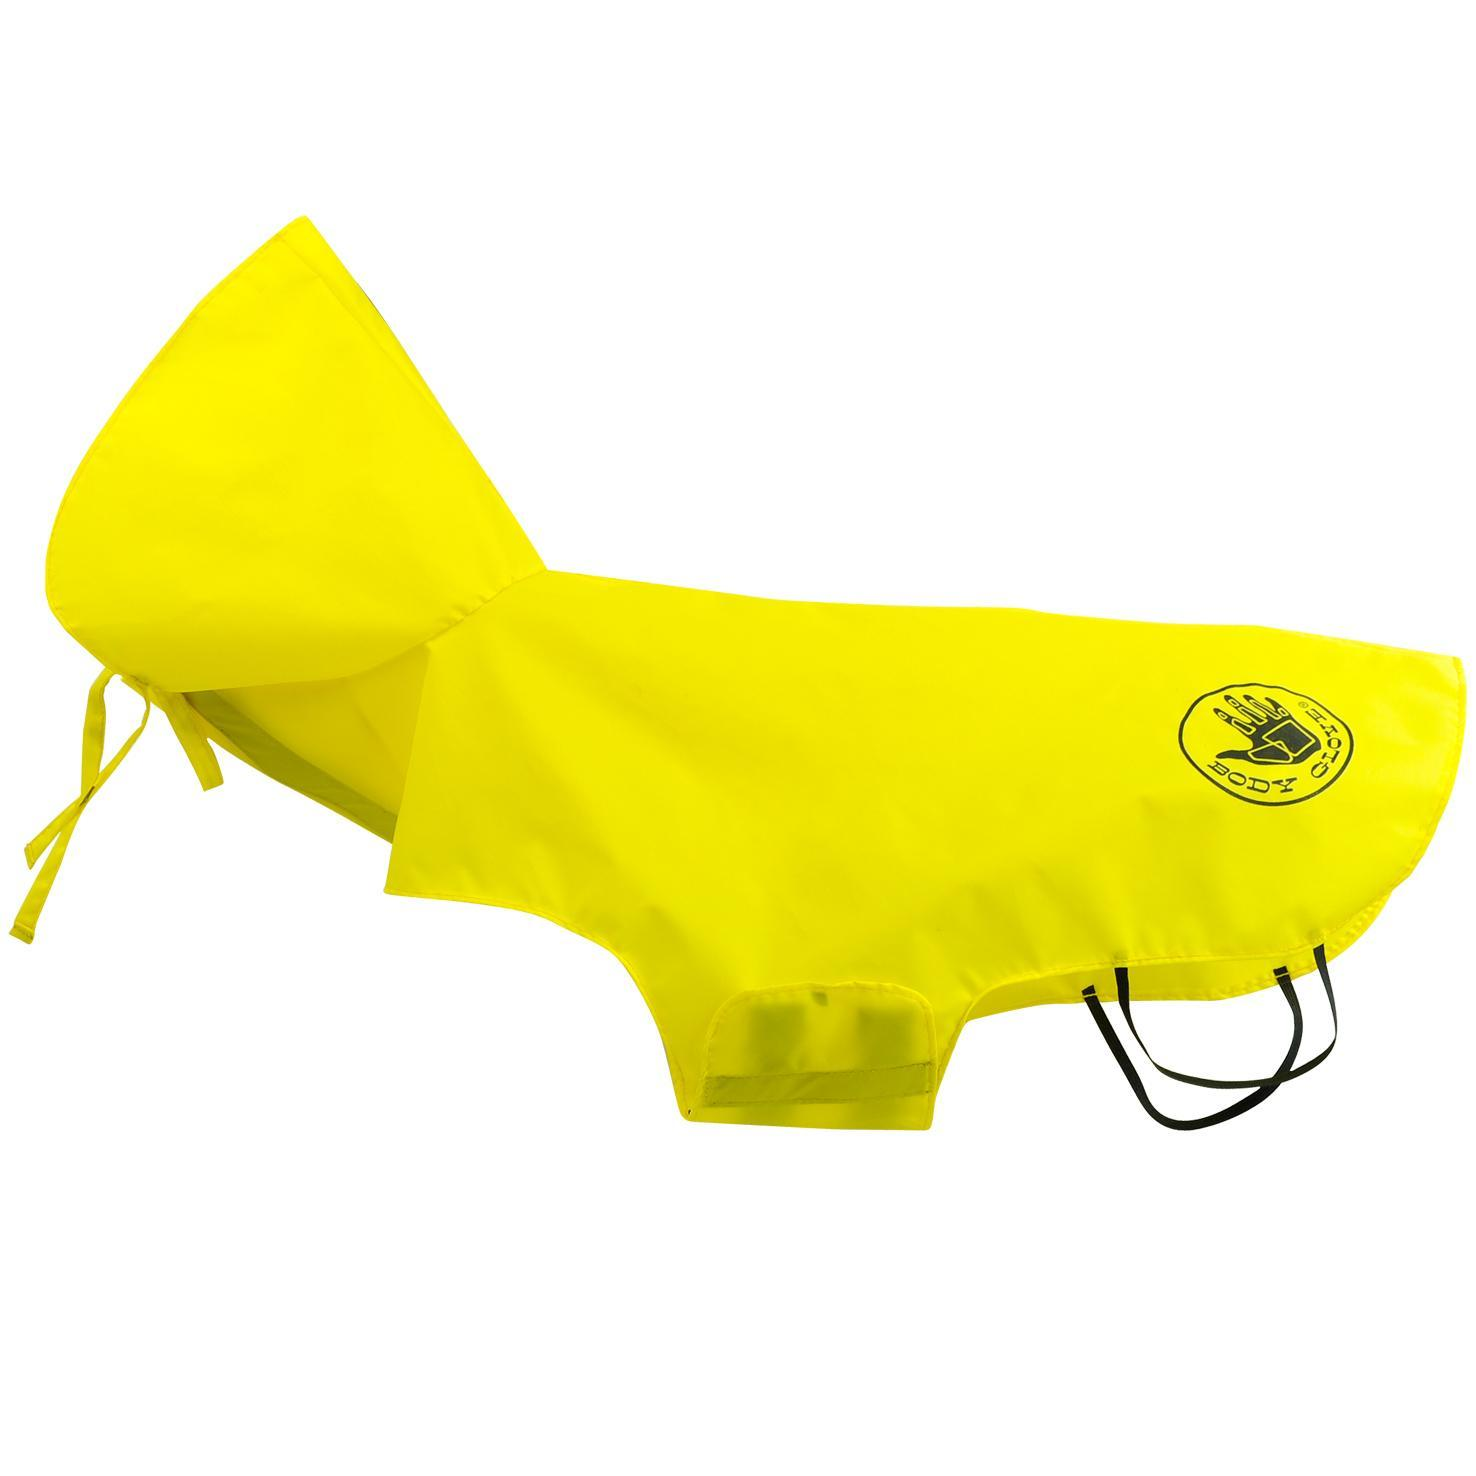 Body Glove Dog Raincoat and Free Car Seat Protector Package